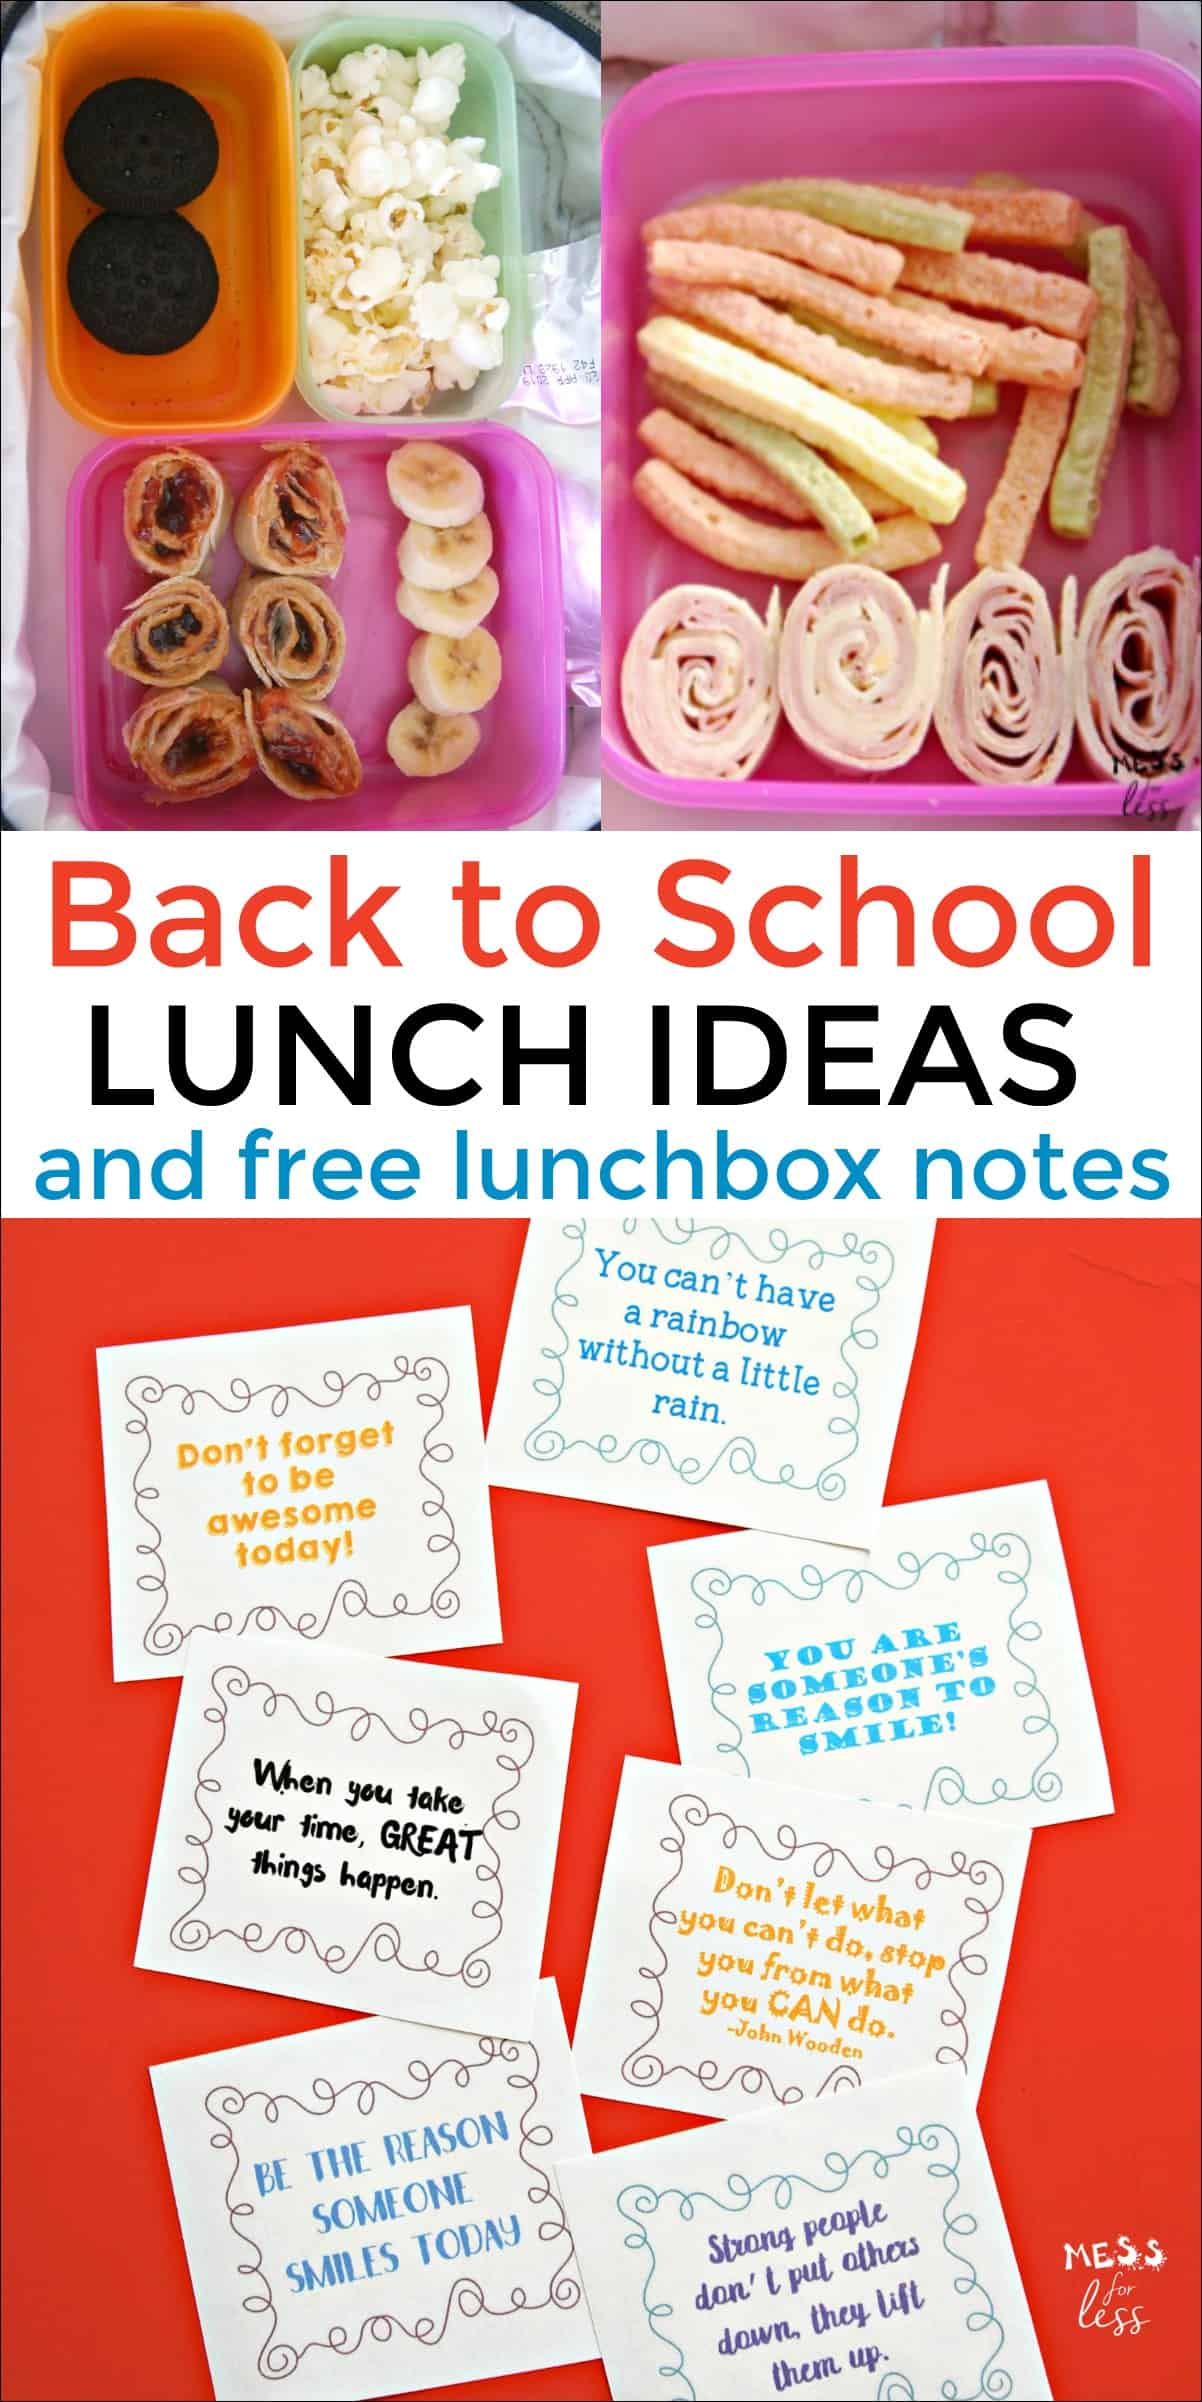 Back to School Lunch Ideas and Lunchbox Notes - Need some back to school lunch ideas? Get them here, along with some free printable lunchbox notes for kids. #ad @Walgreens #SimplyNice